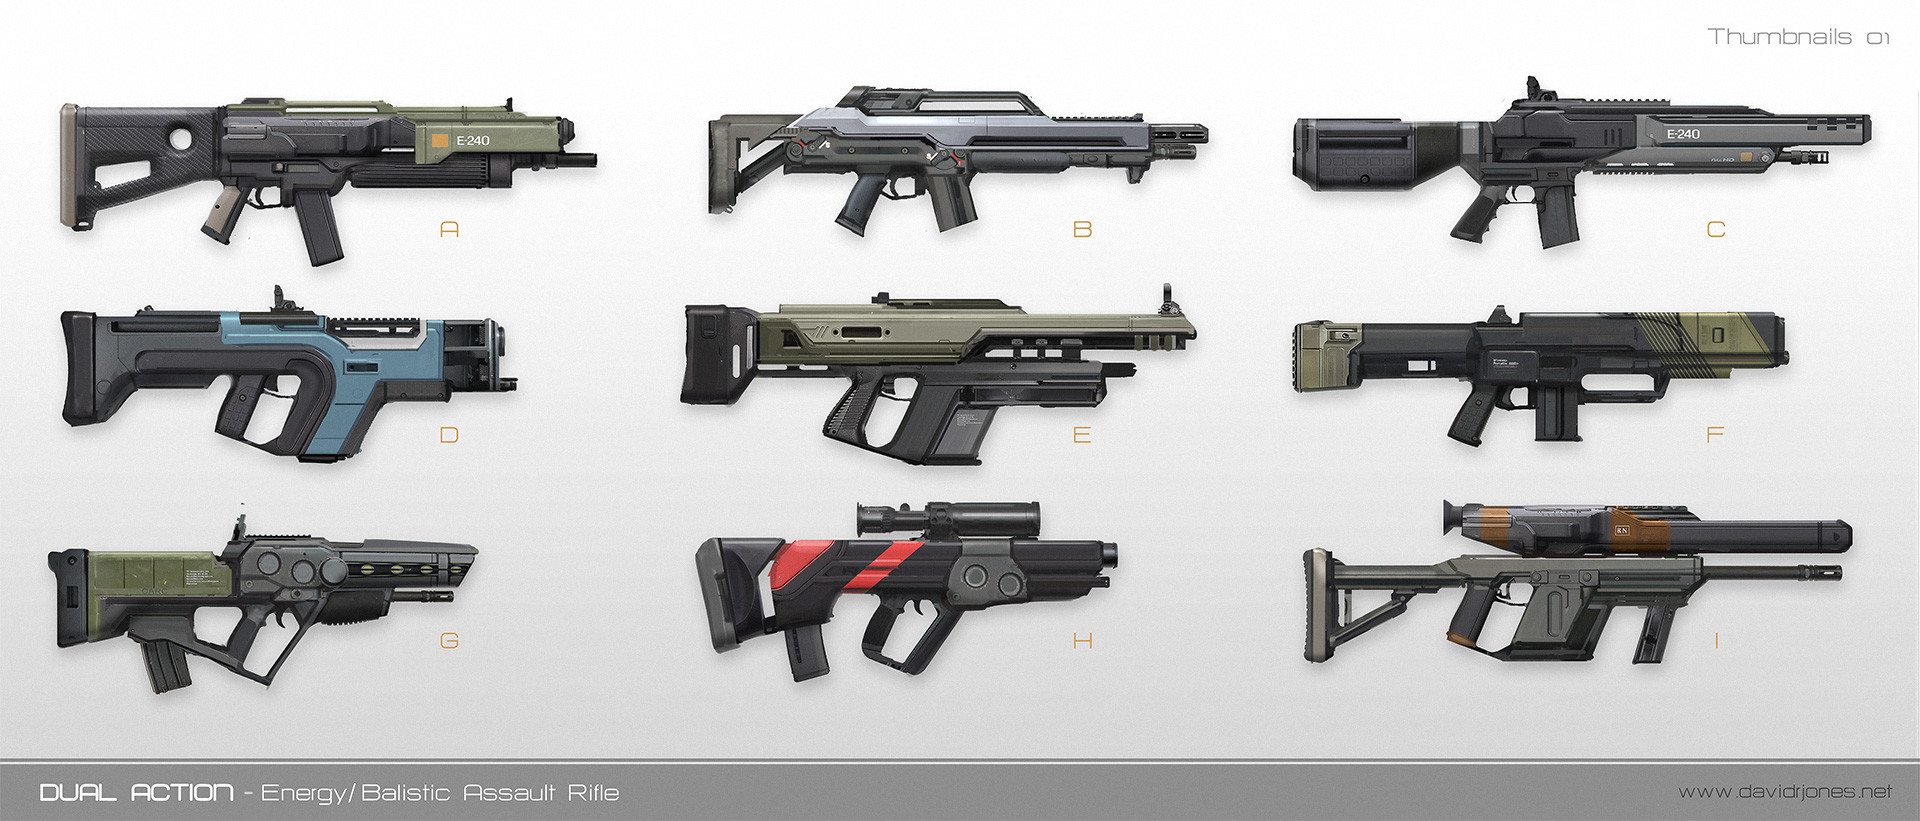 Dave jones assault rifle thumbnails